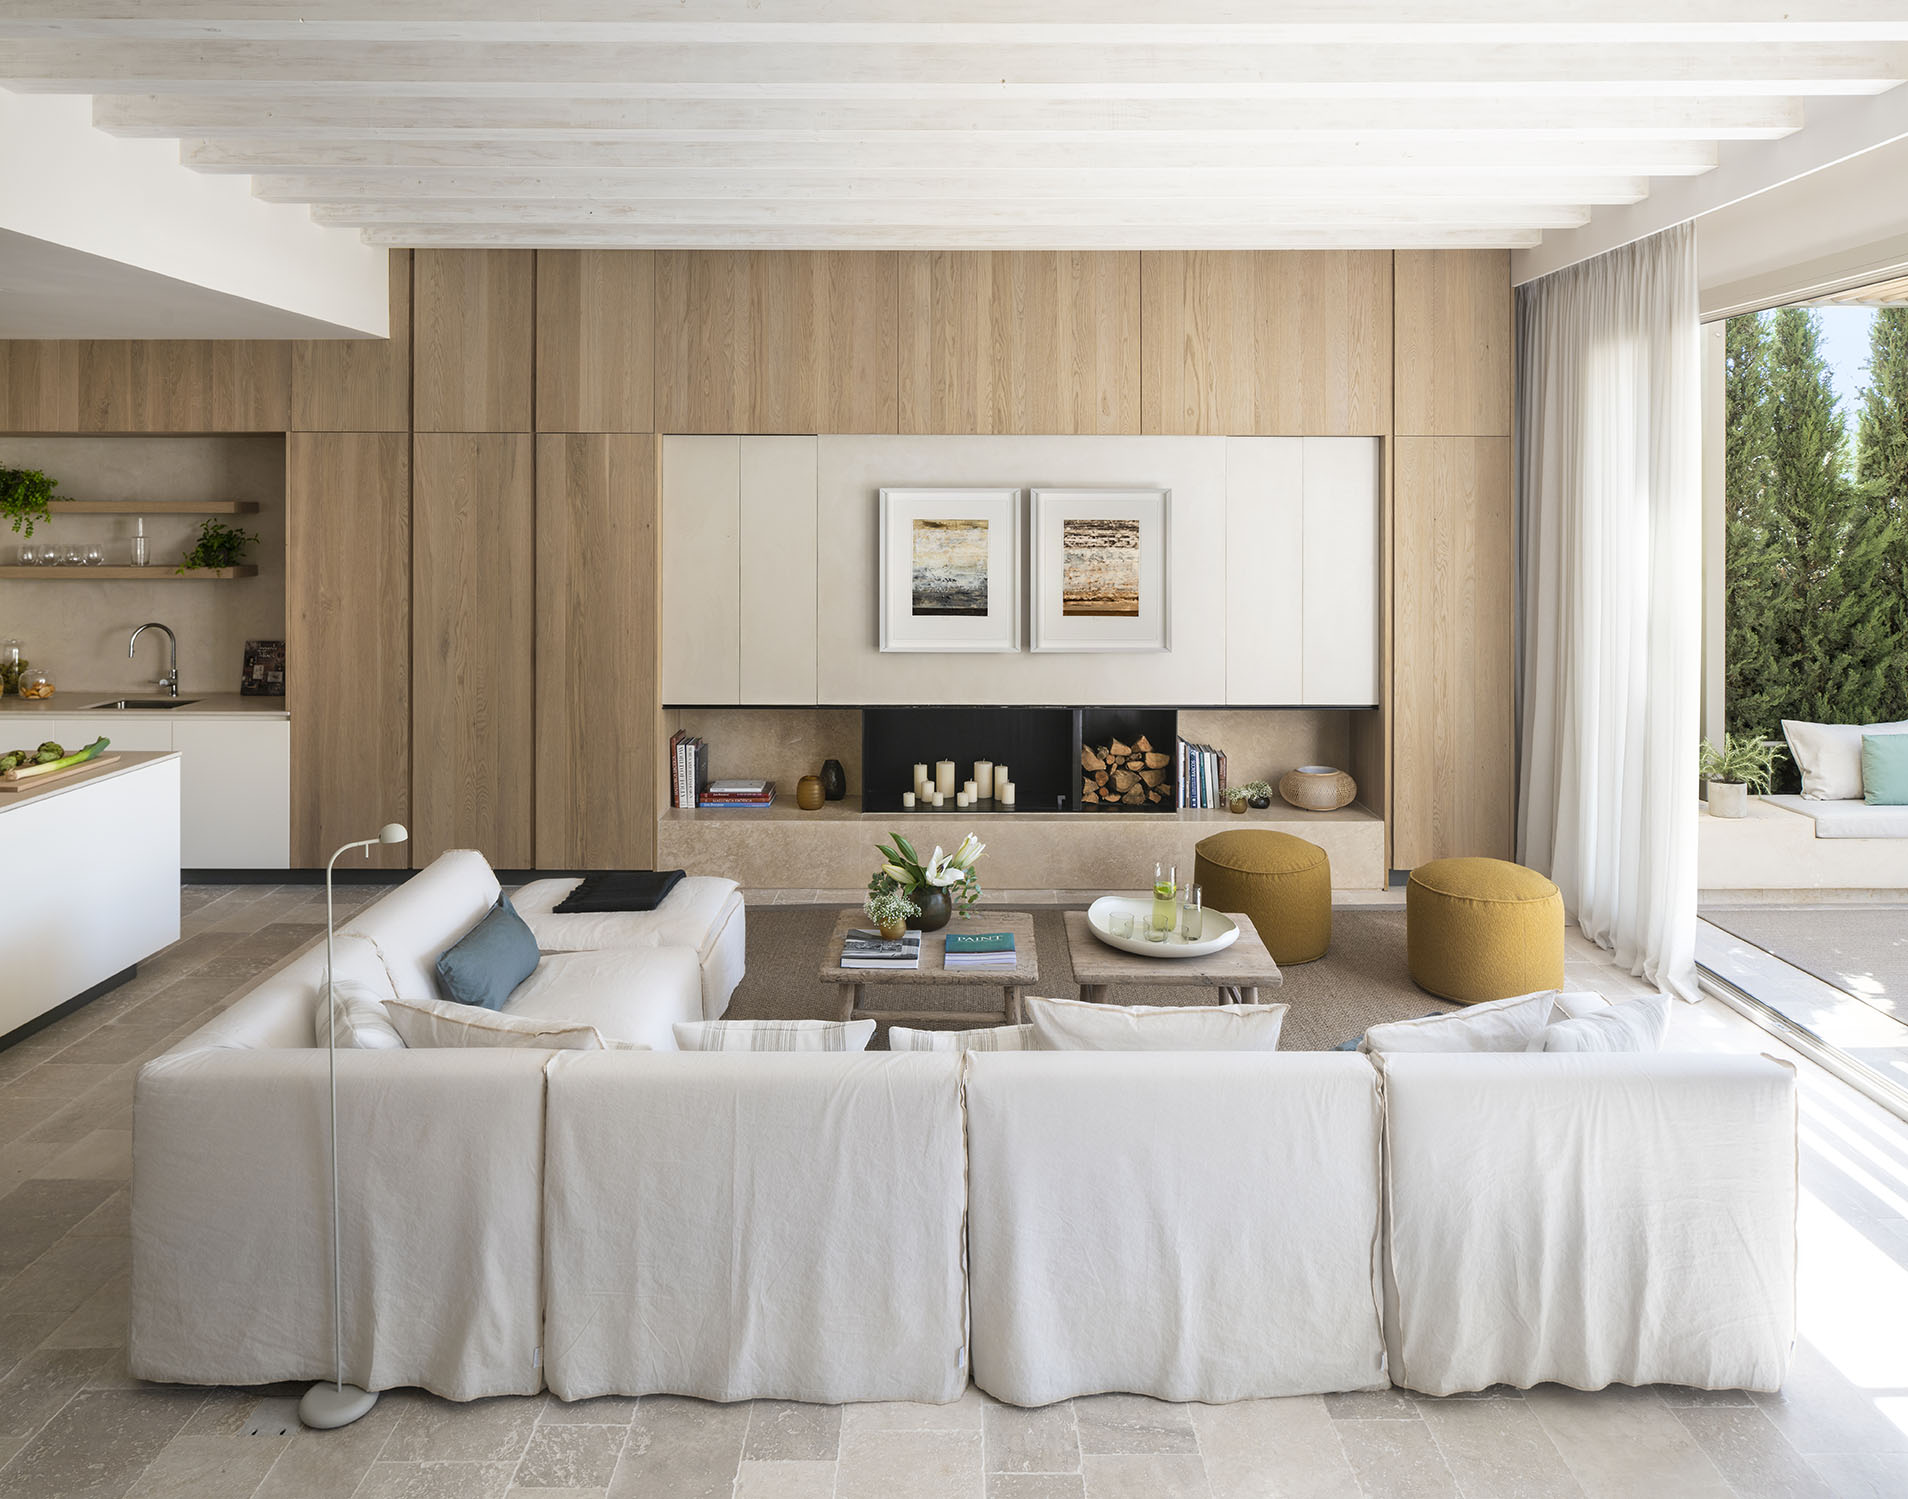 L'Imperial Santanyi | Terraza Balear interior design project in Mallorca